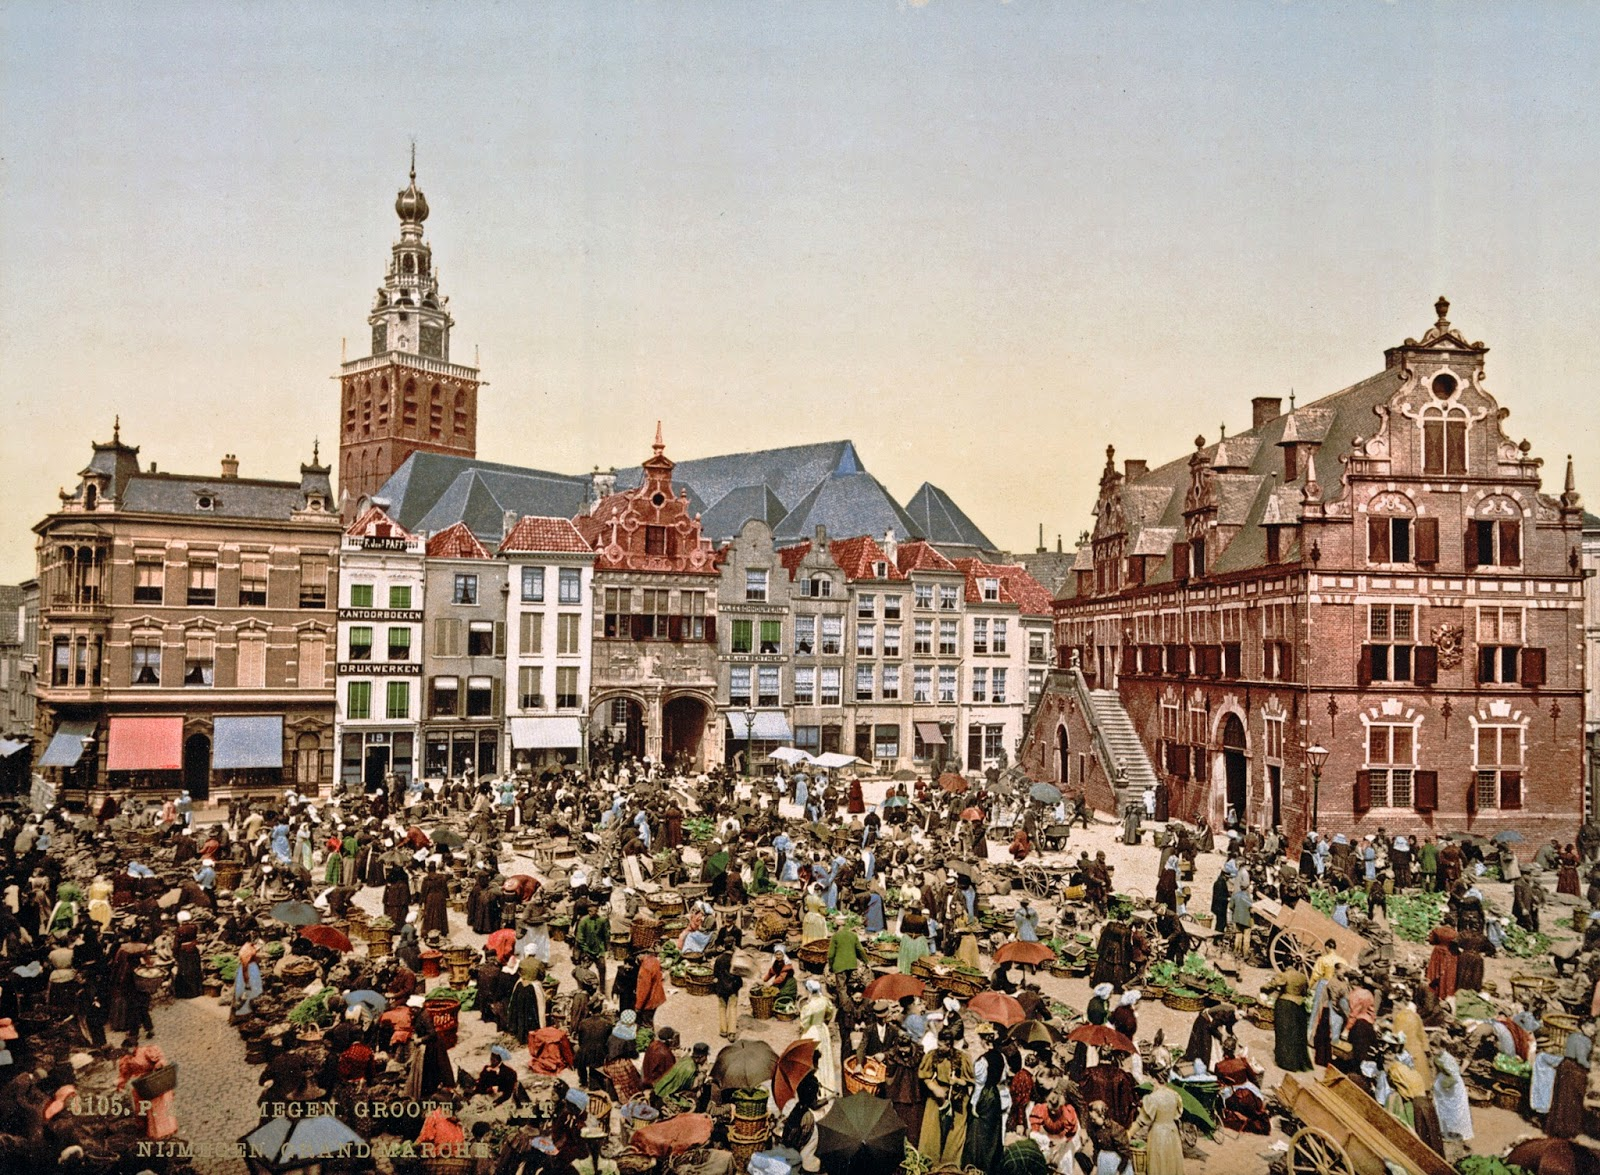 The great market, Nijmegen, Holland, ca. 1890-1900.jpg